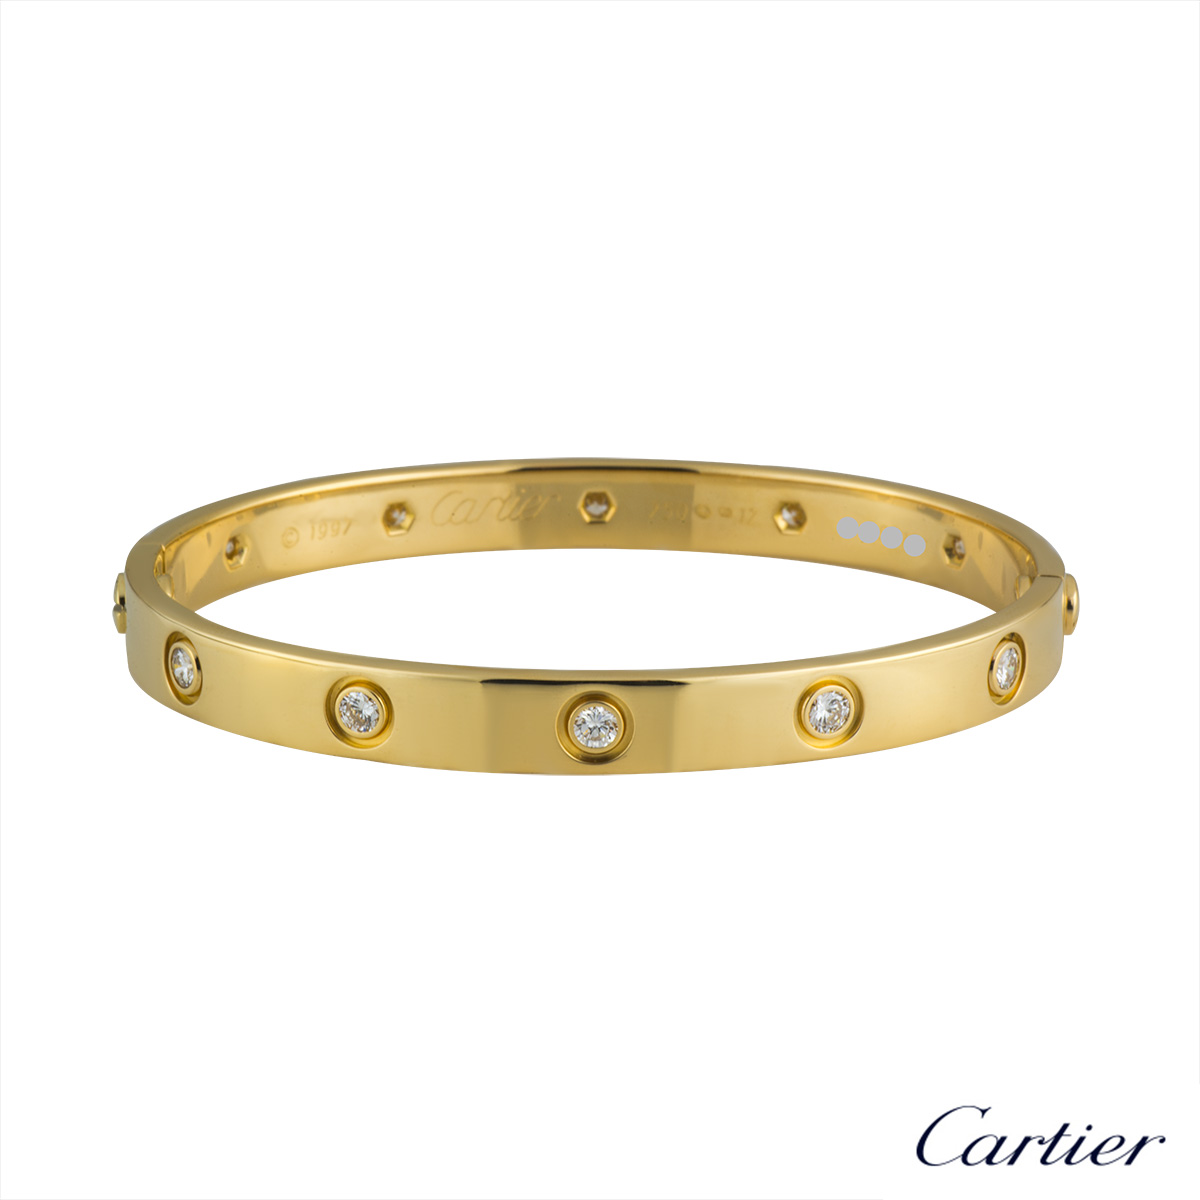 Cartier Yellow Gold Full Diamond Love Bracelet Size 19 B6040519